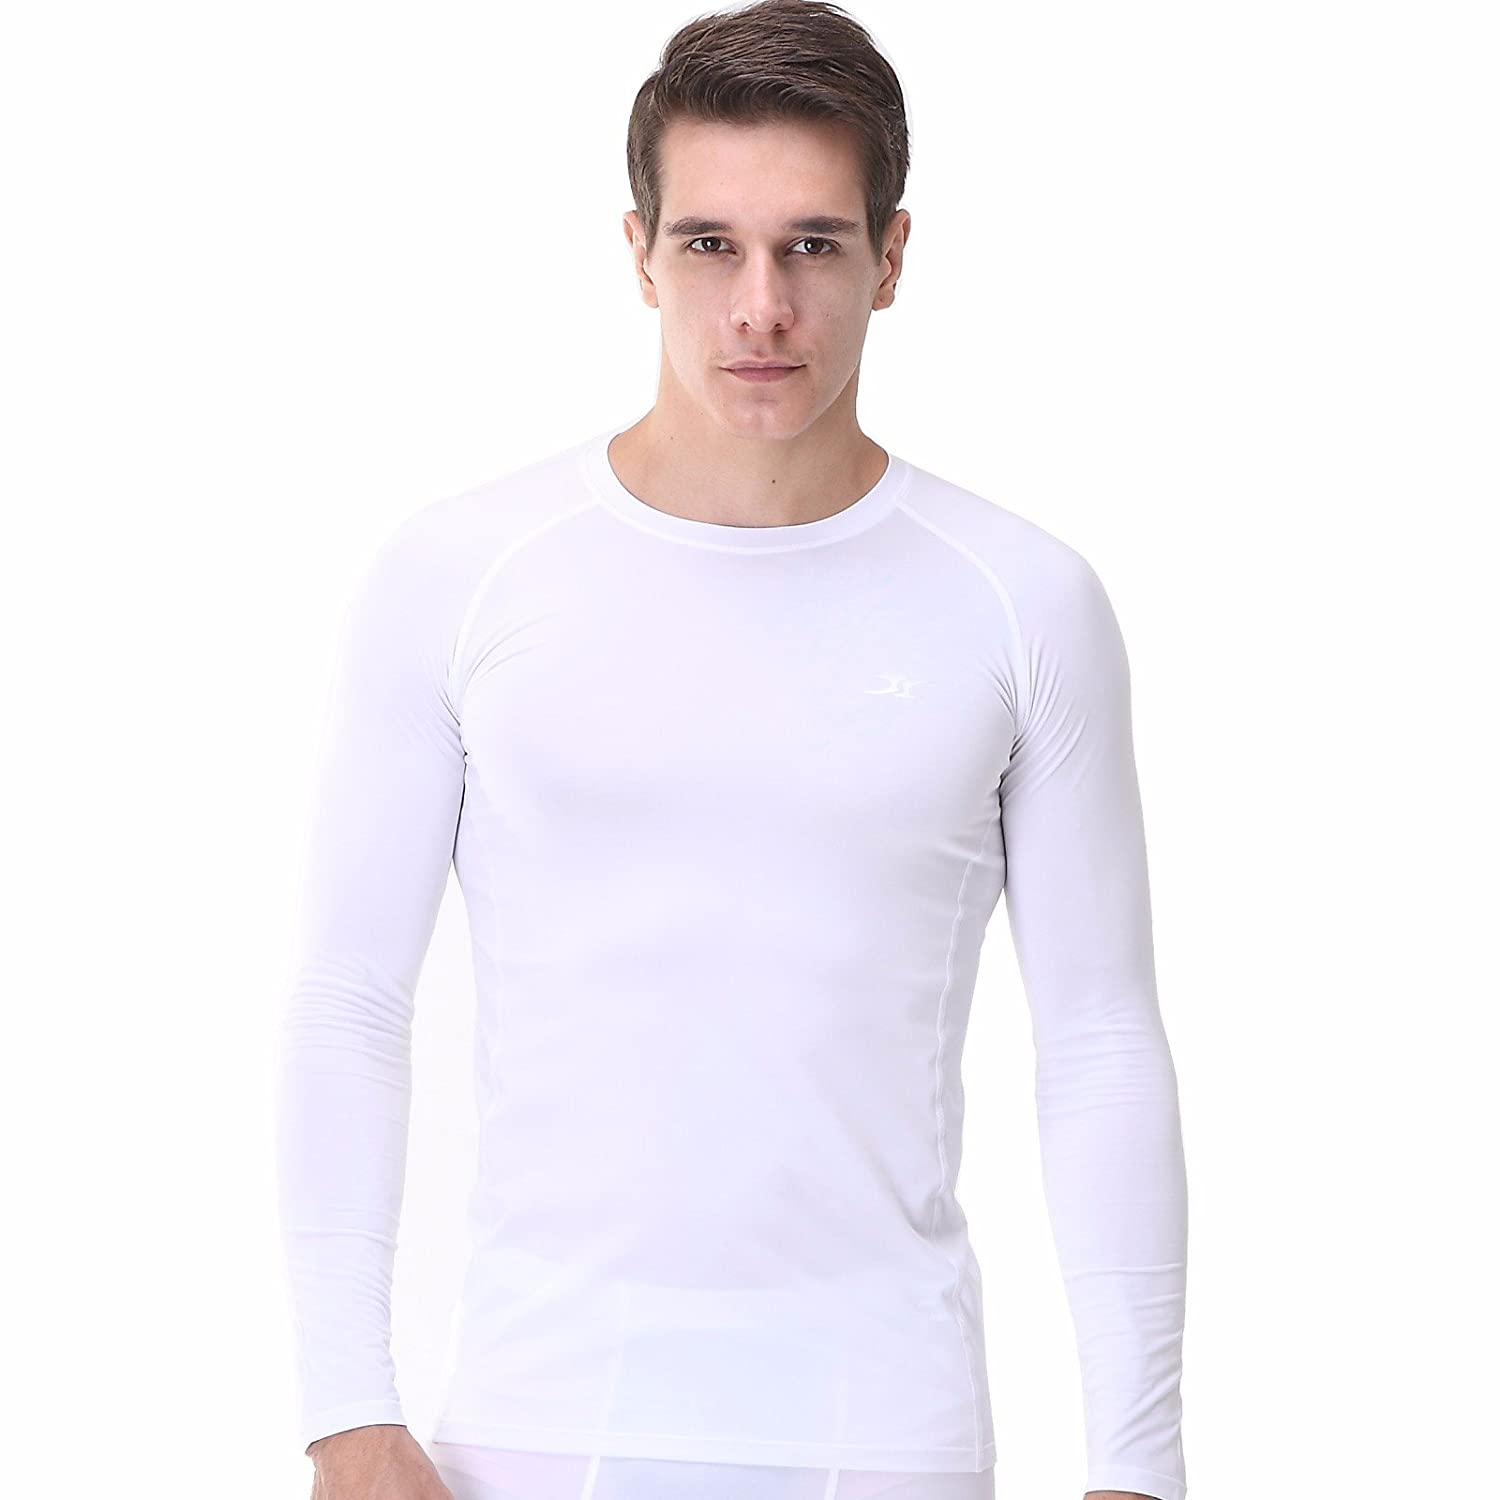 Mens Compression Long Sleeve Shirt Top Base Layer T Shirts for Fitness Running LS Henri maurice